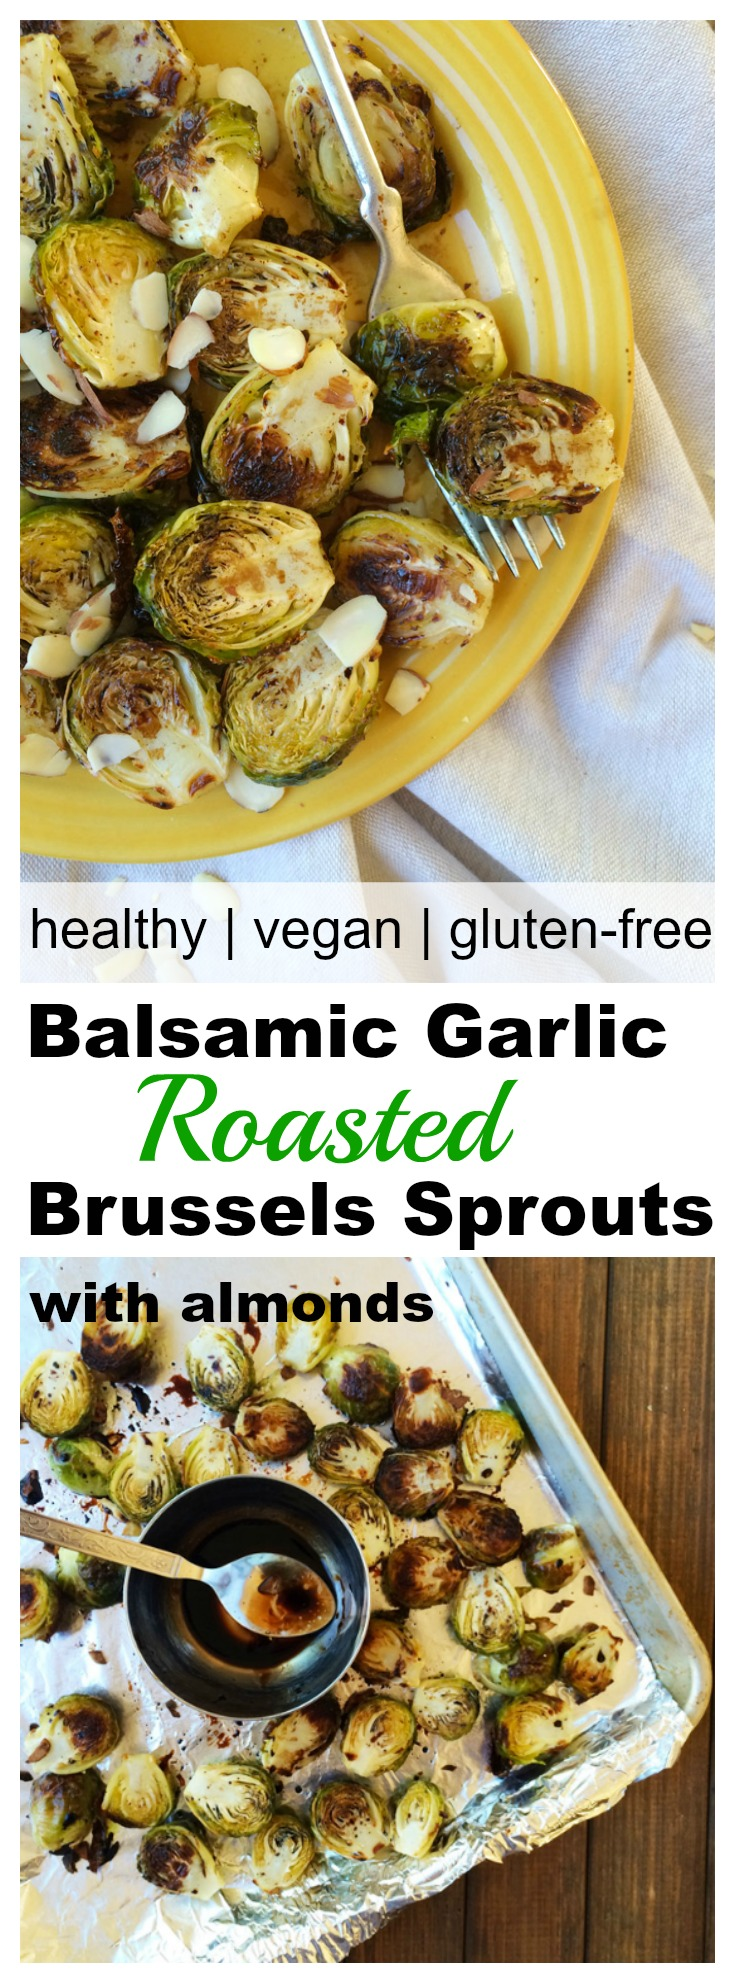 Oven roasted garlic Brussels sprouts with balsamic glaze & almonds